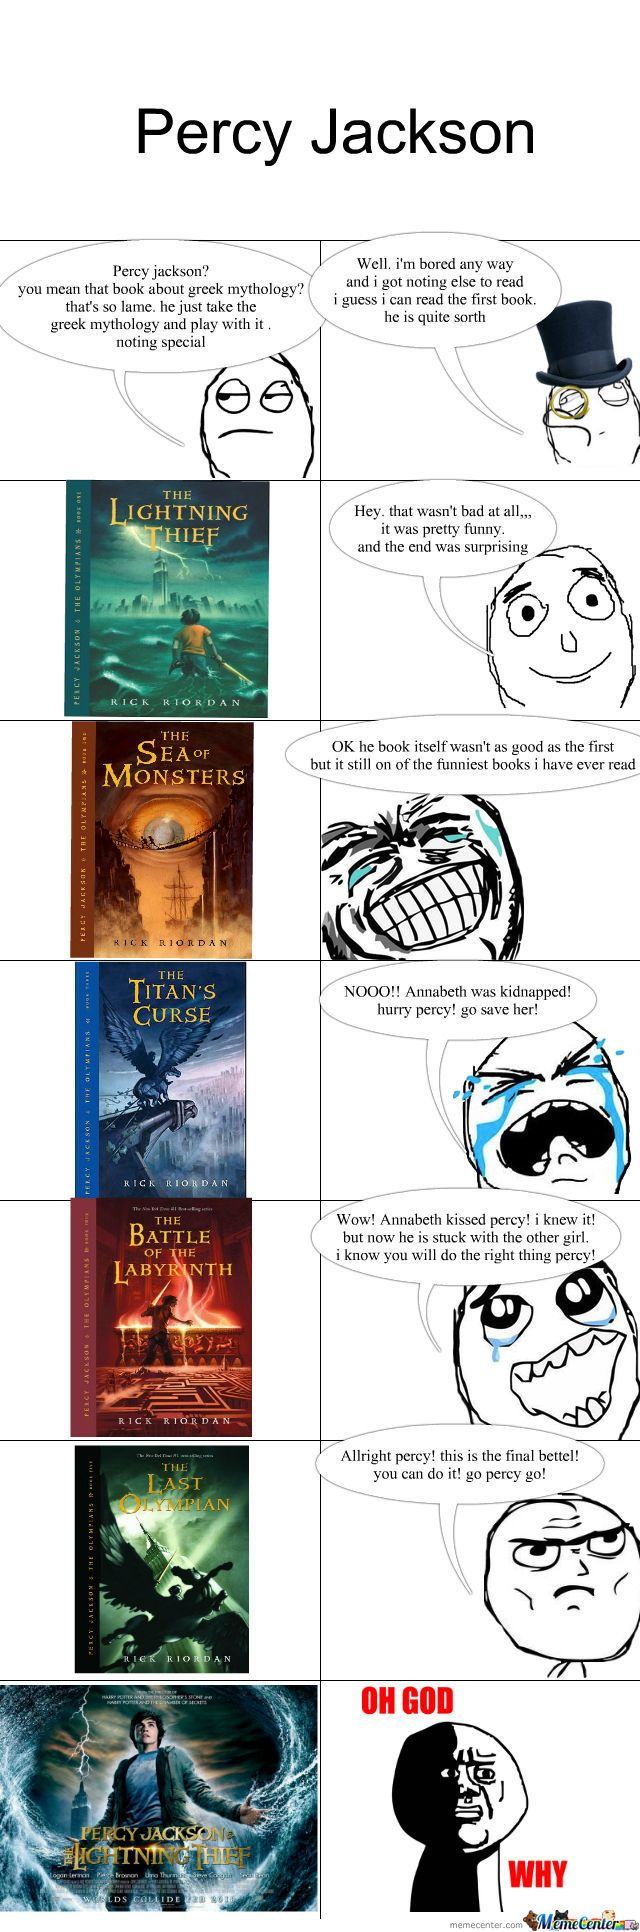 Exactly what happened to me when I read the books. I actually stopped at the 3rd book then reread everything and was like WHAT IS WRONG WITH ME?!!!?